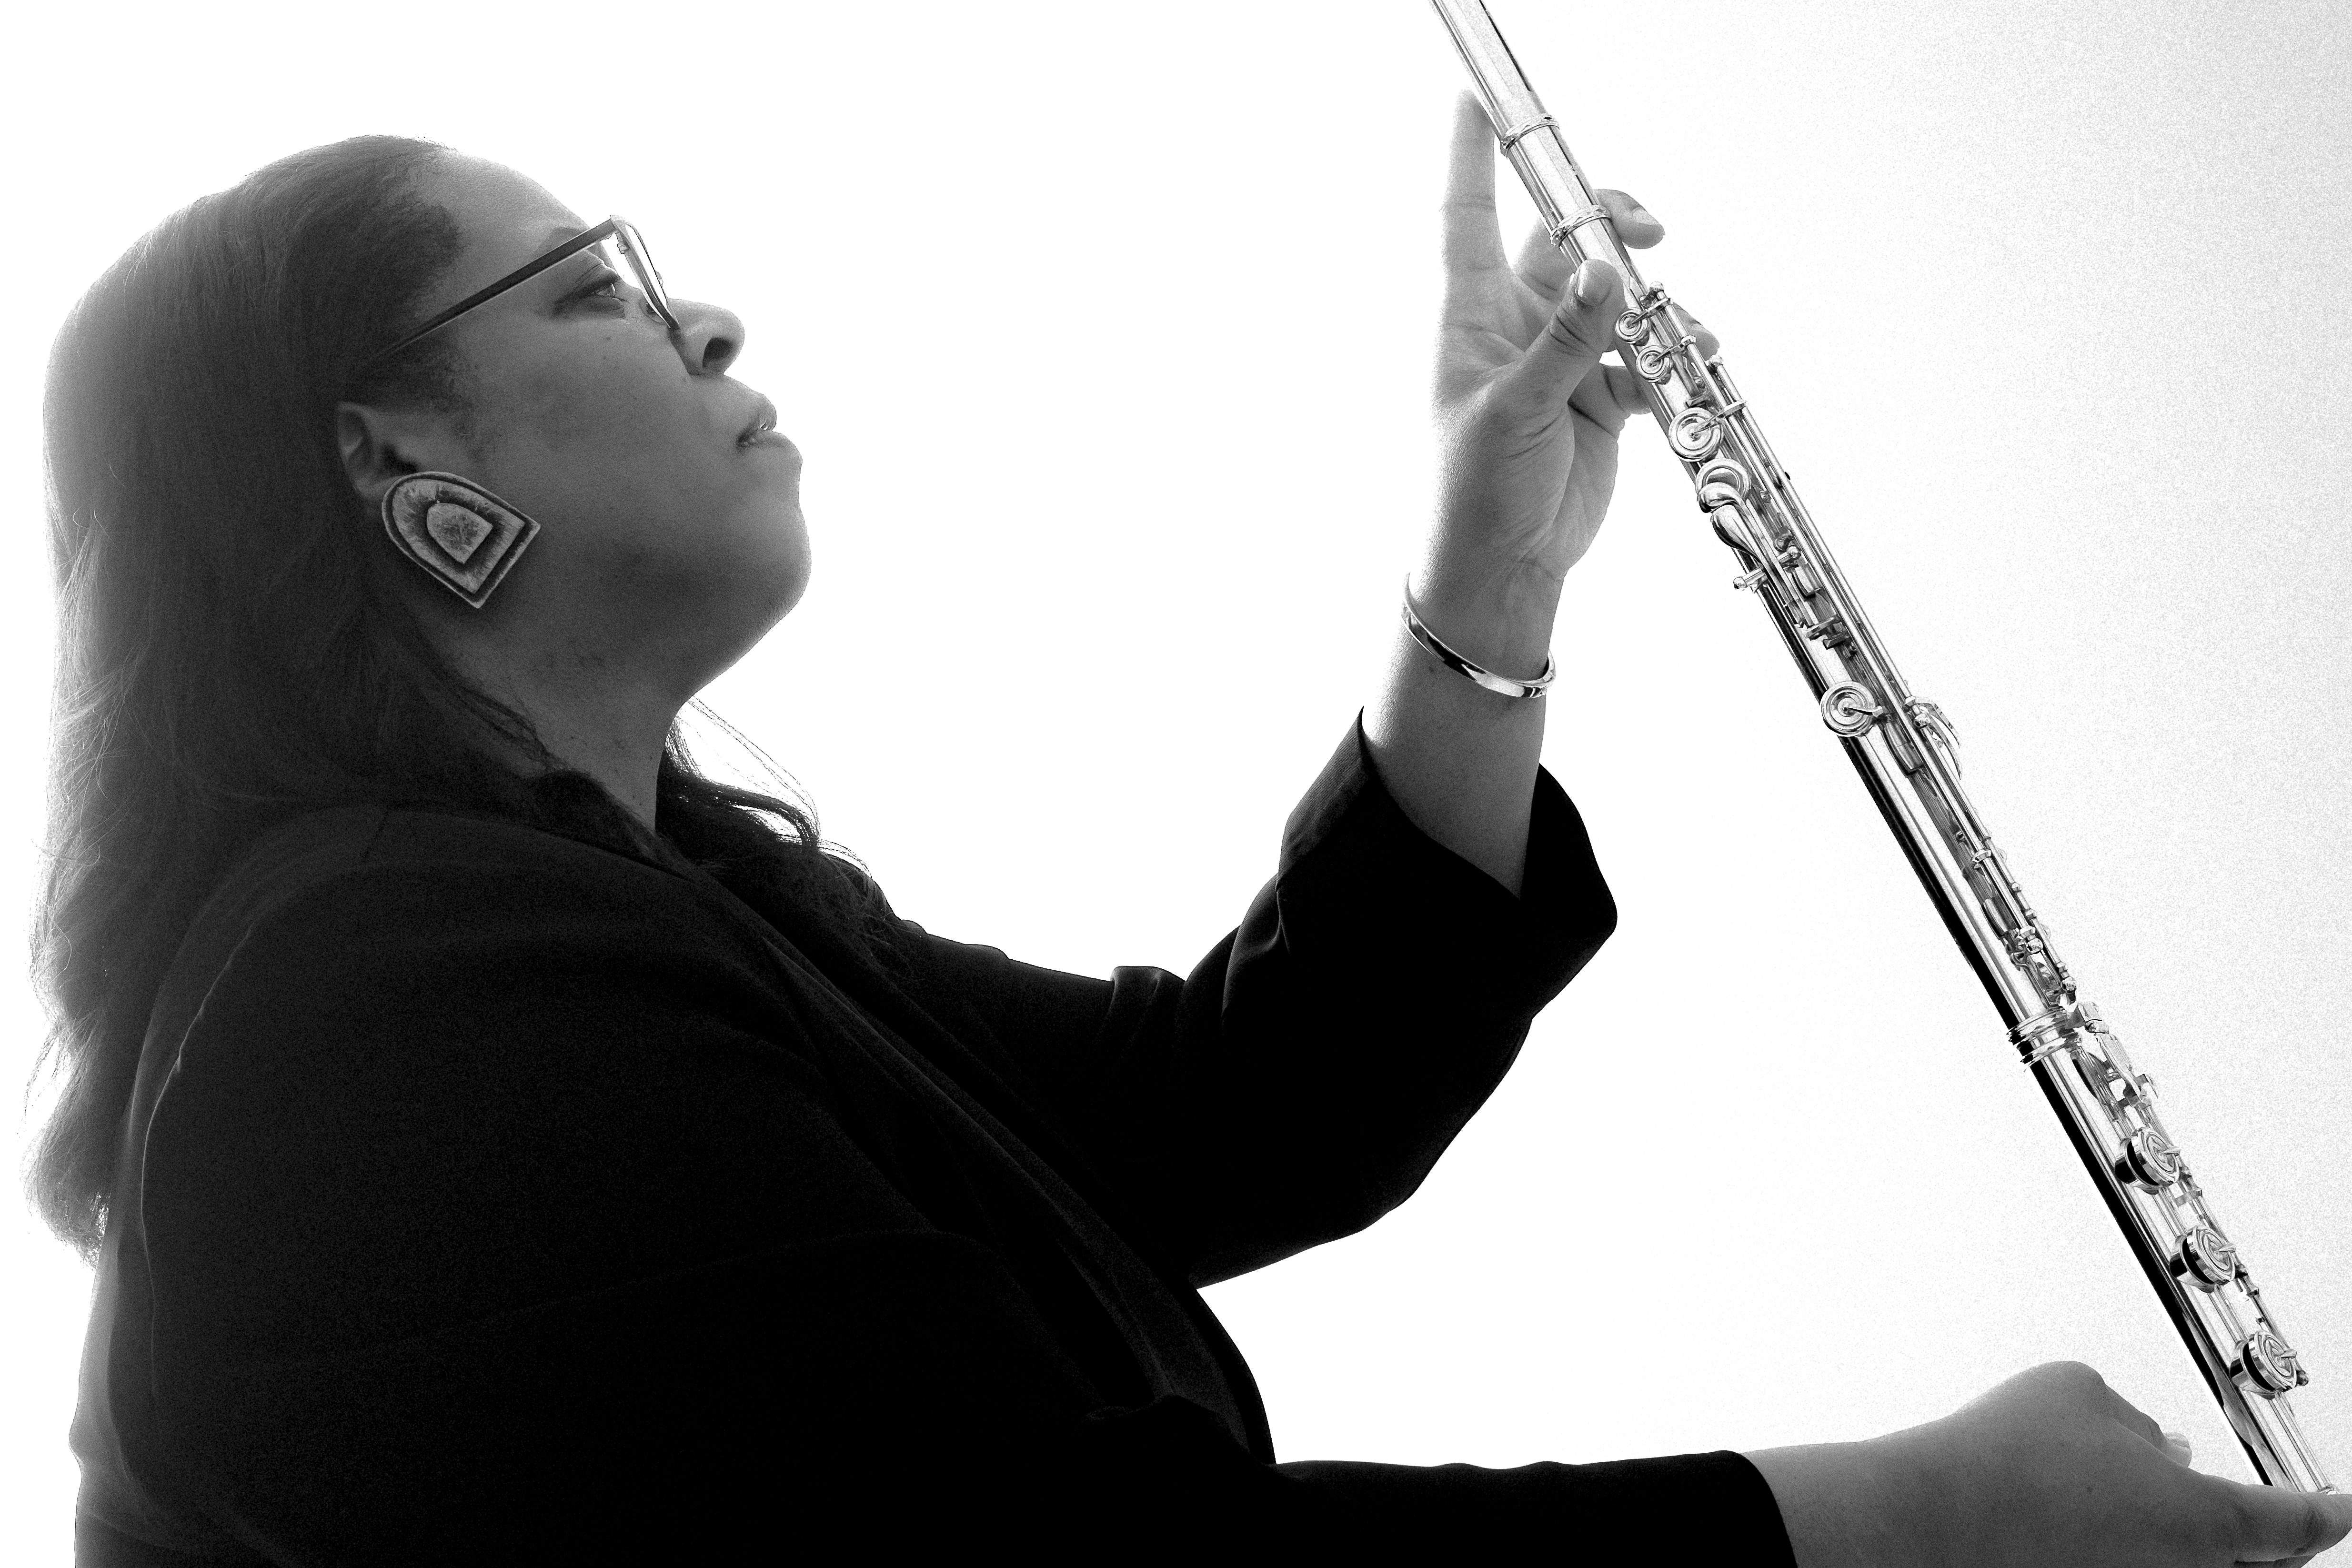 valerie coleman hold a flute and looks up